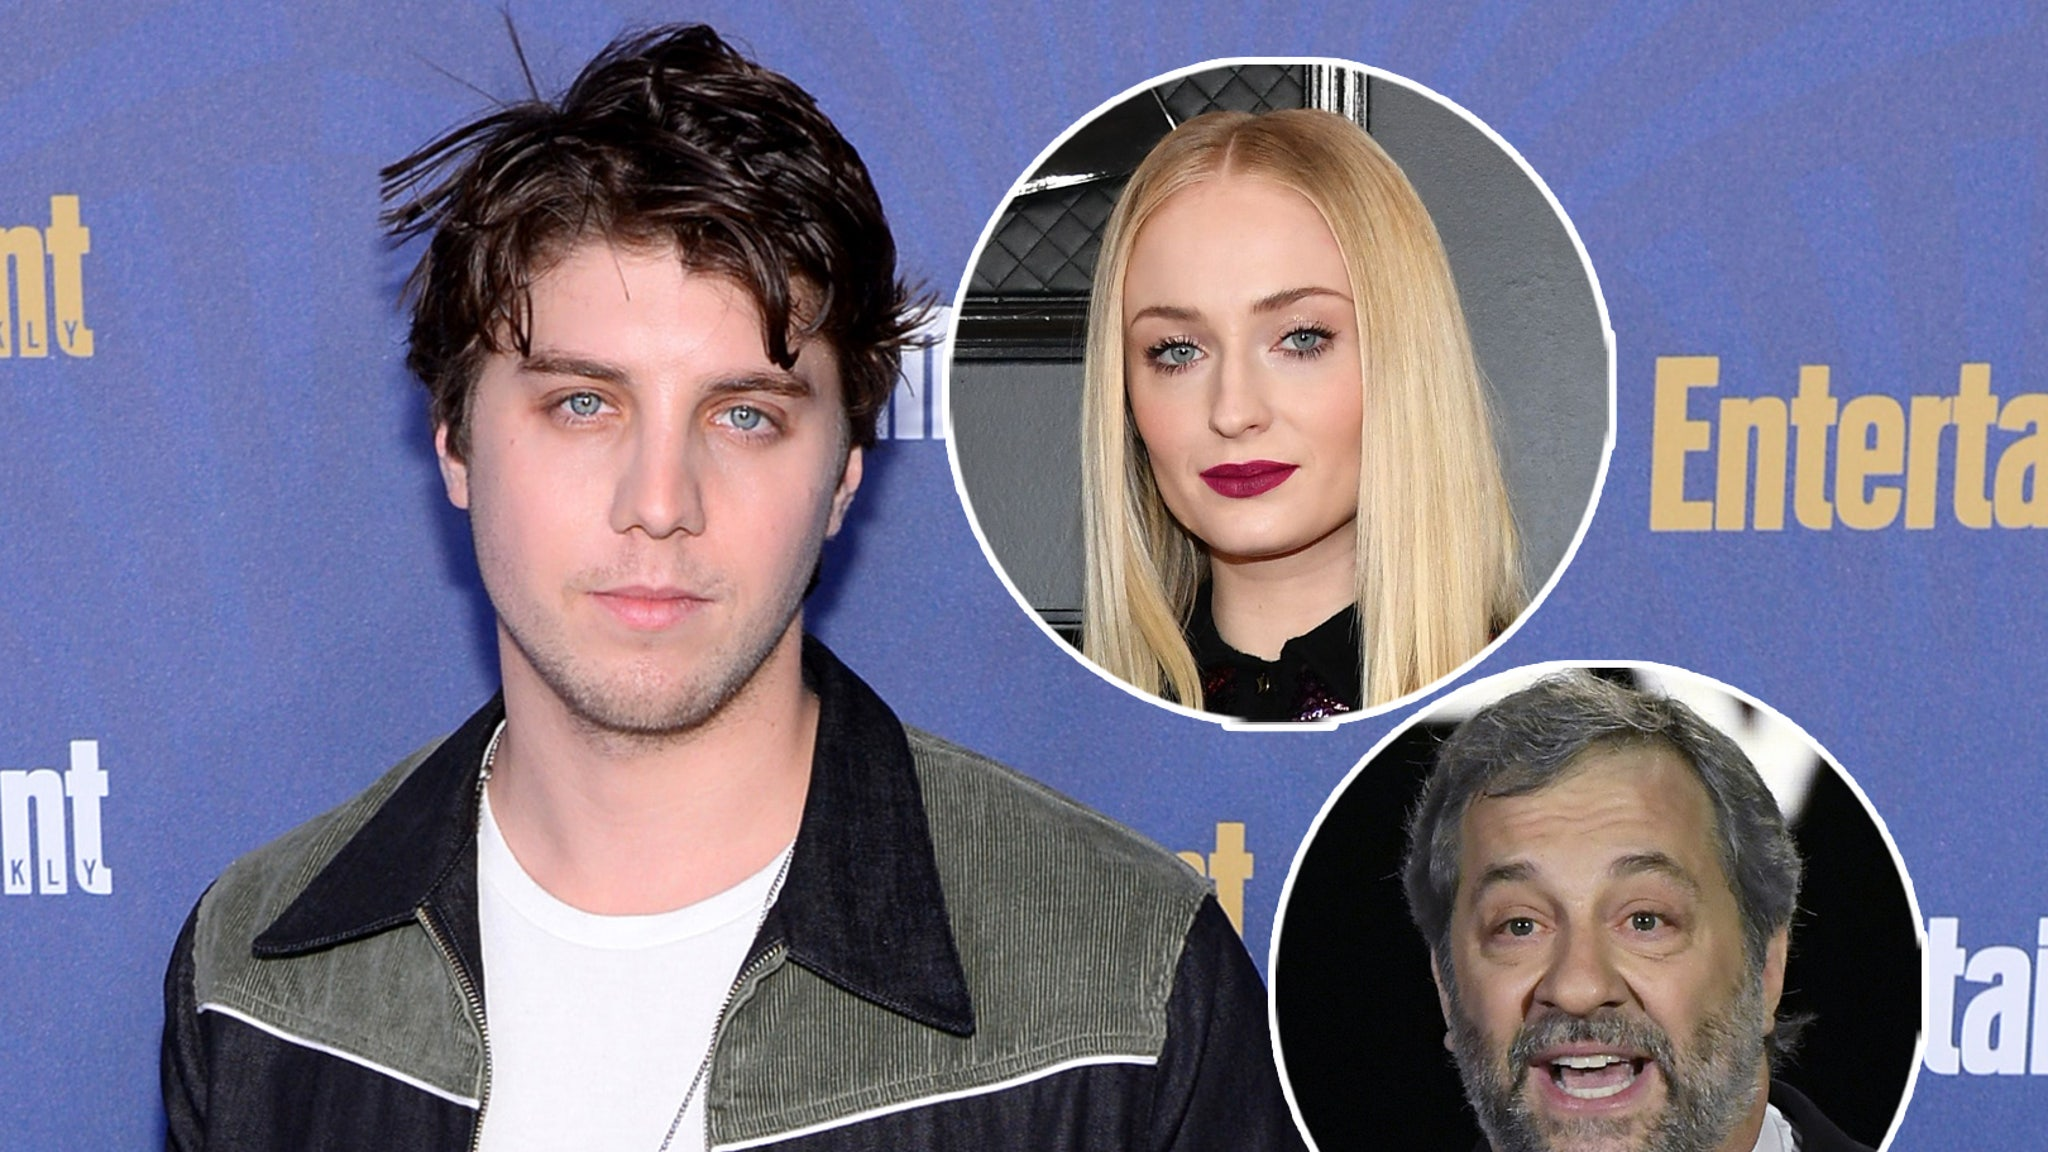 Lukas Gage Supported By Sophie Turner, Judd Apatow, and More After Posting Clip of 'S--t Talking' Director